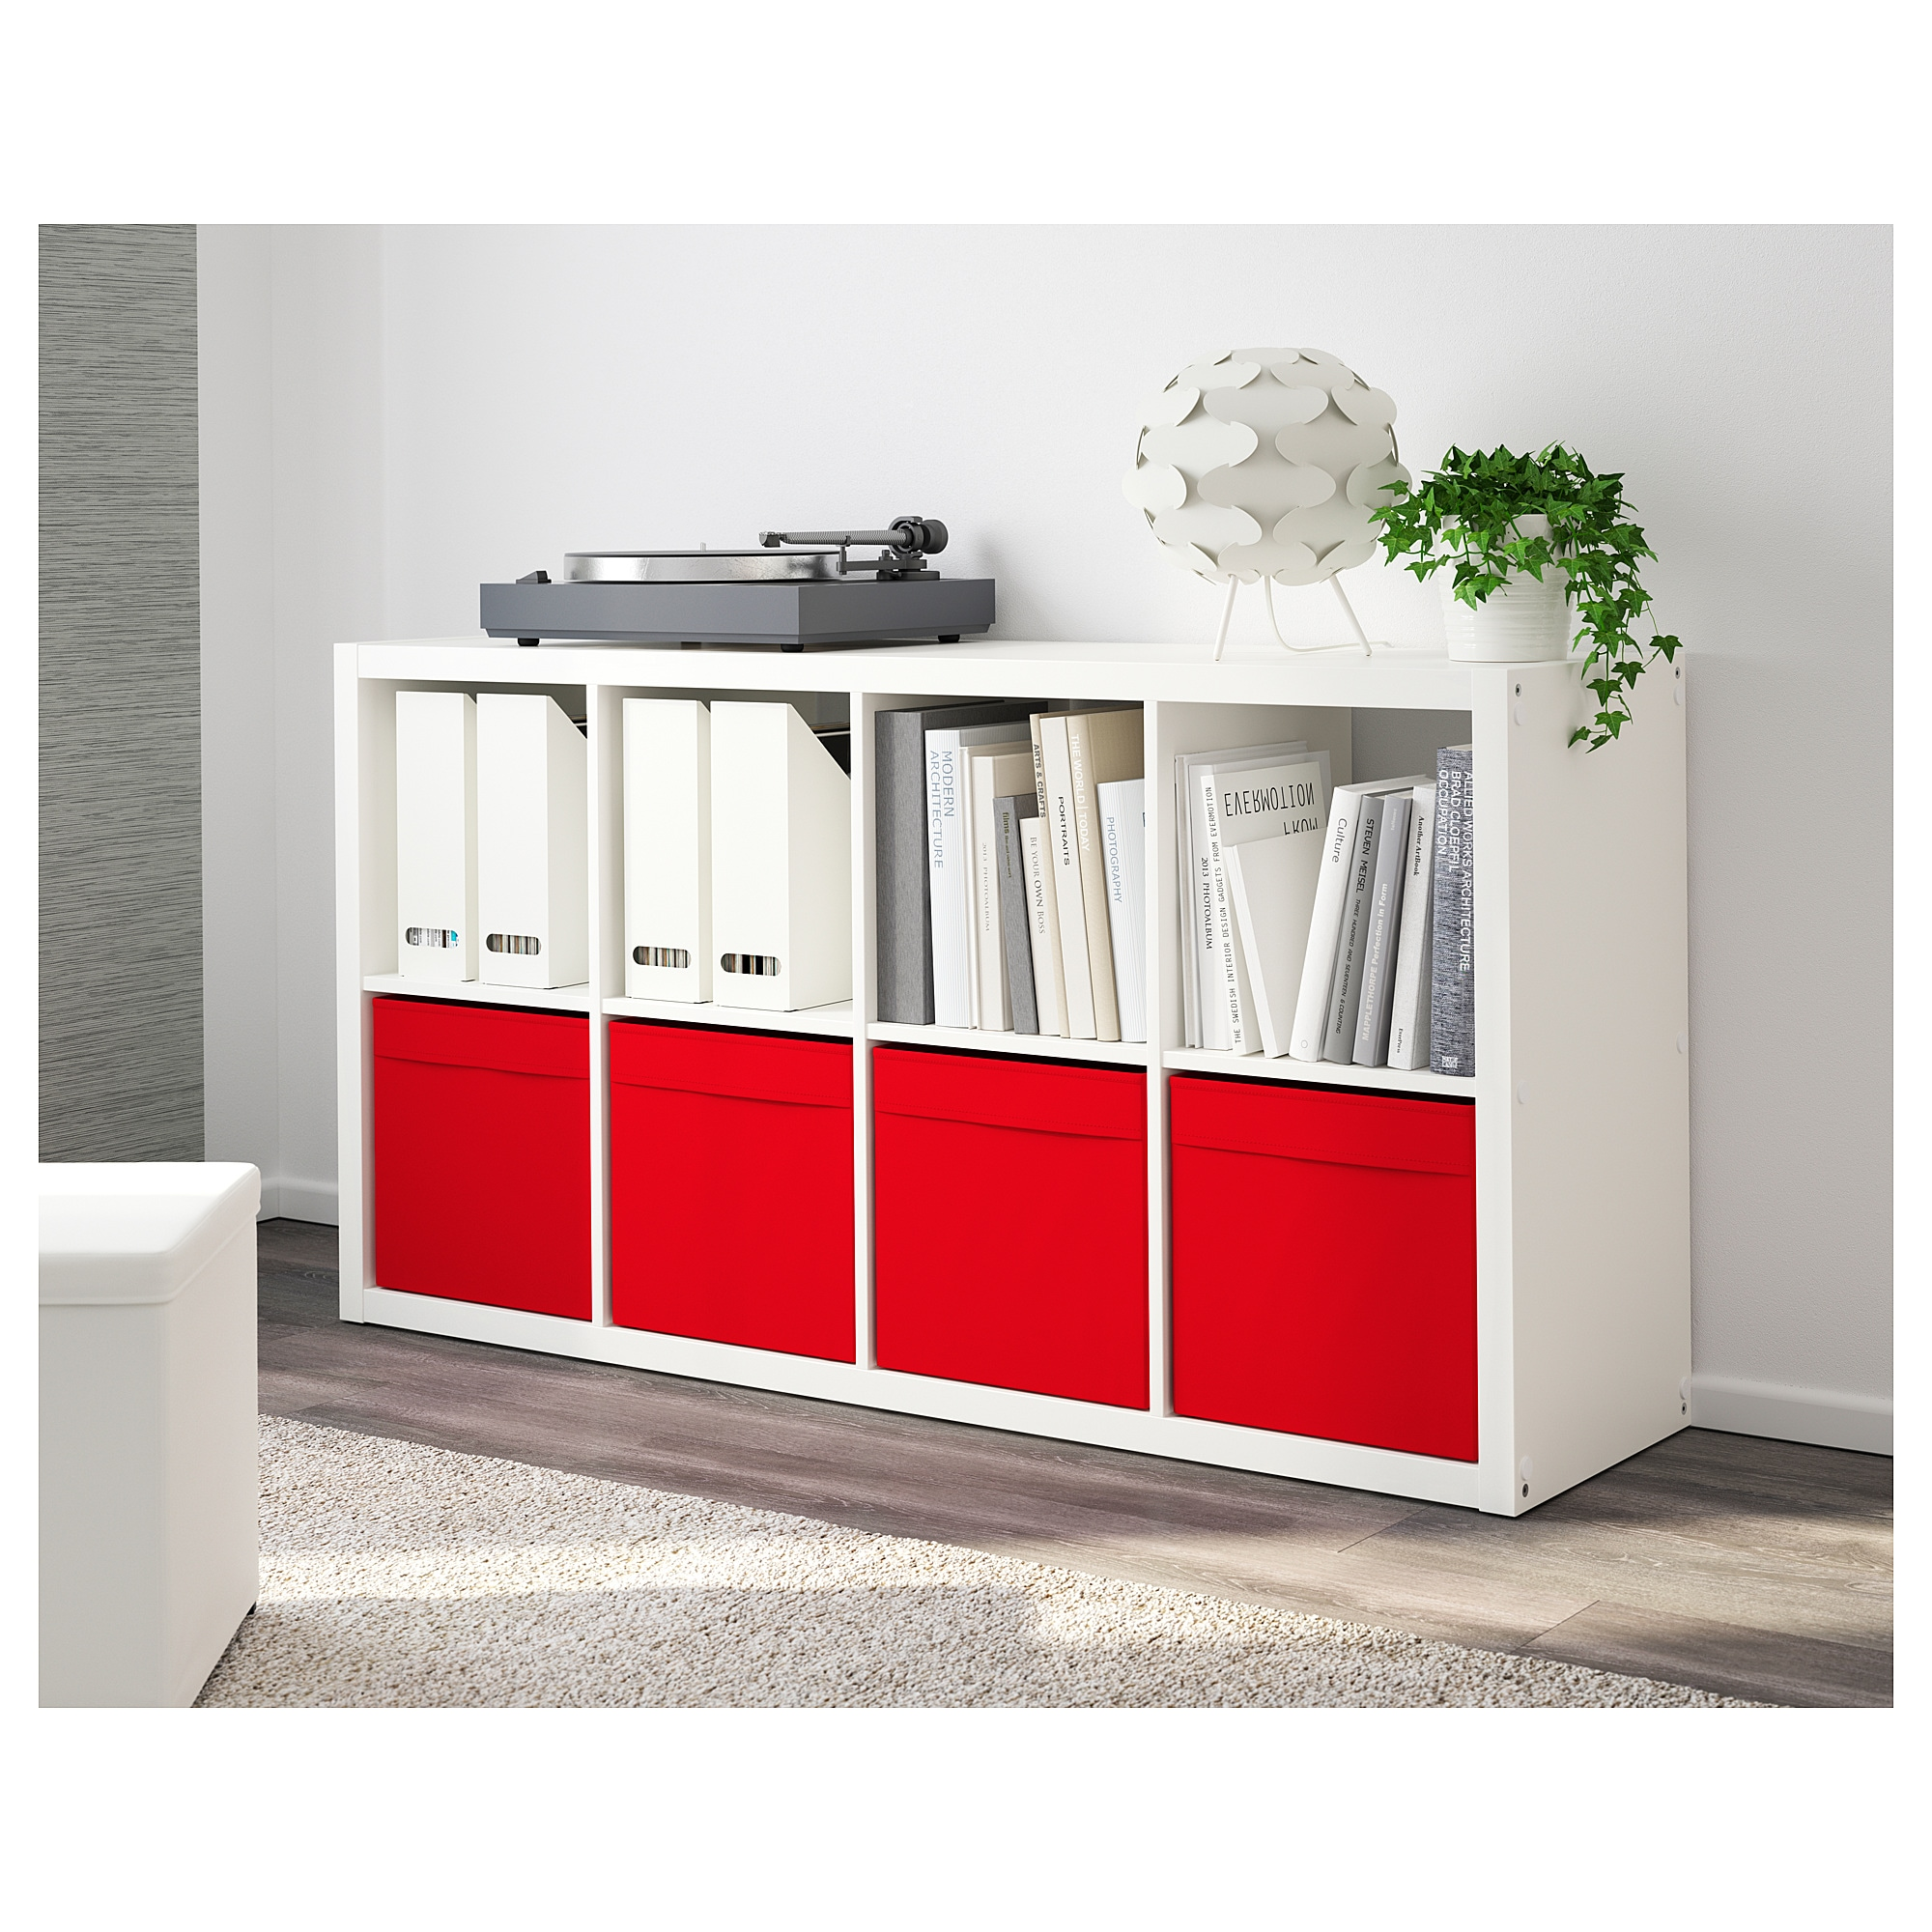 Image result for rta shelves with fabric boxes